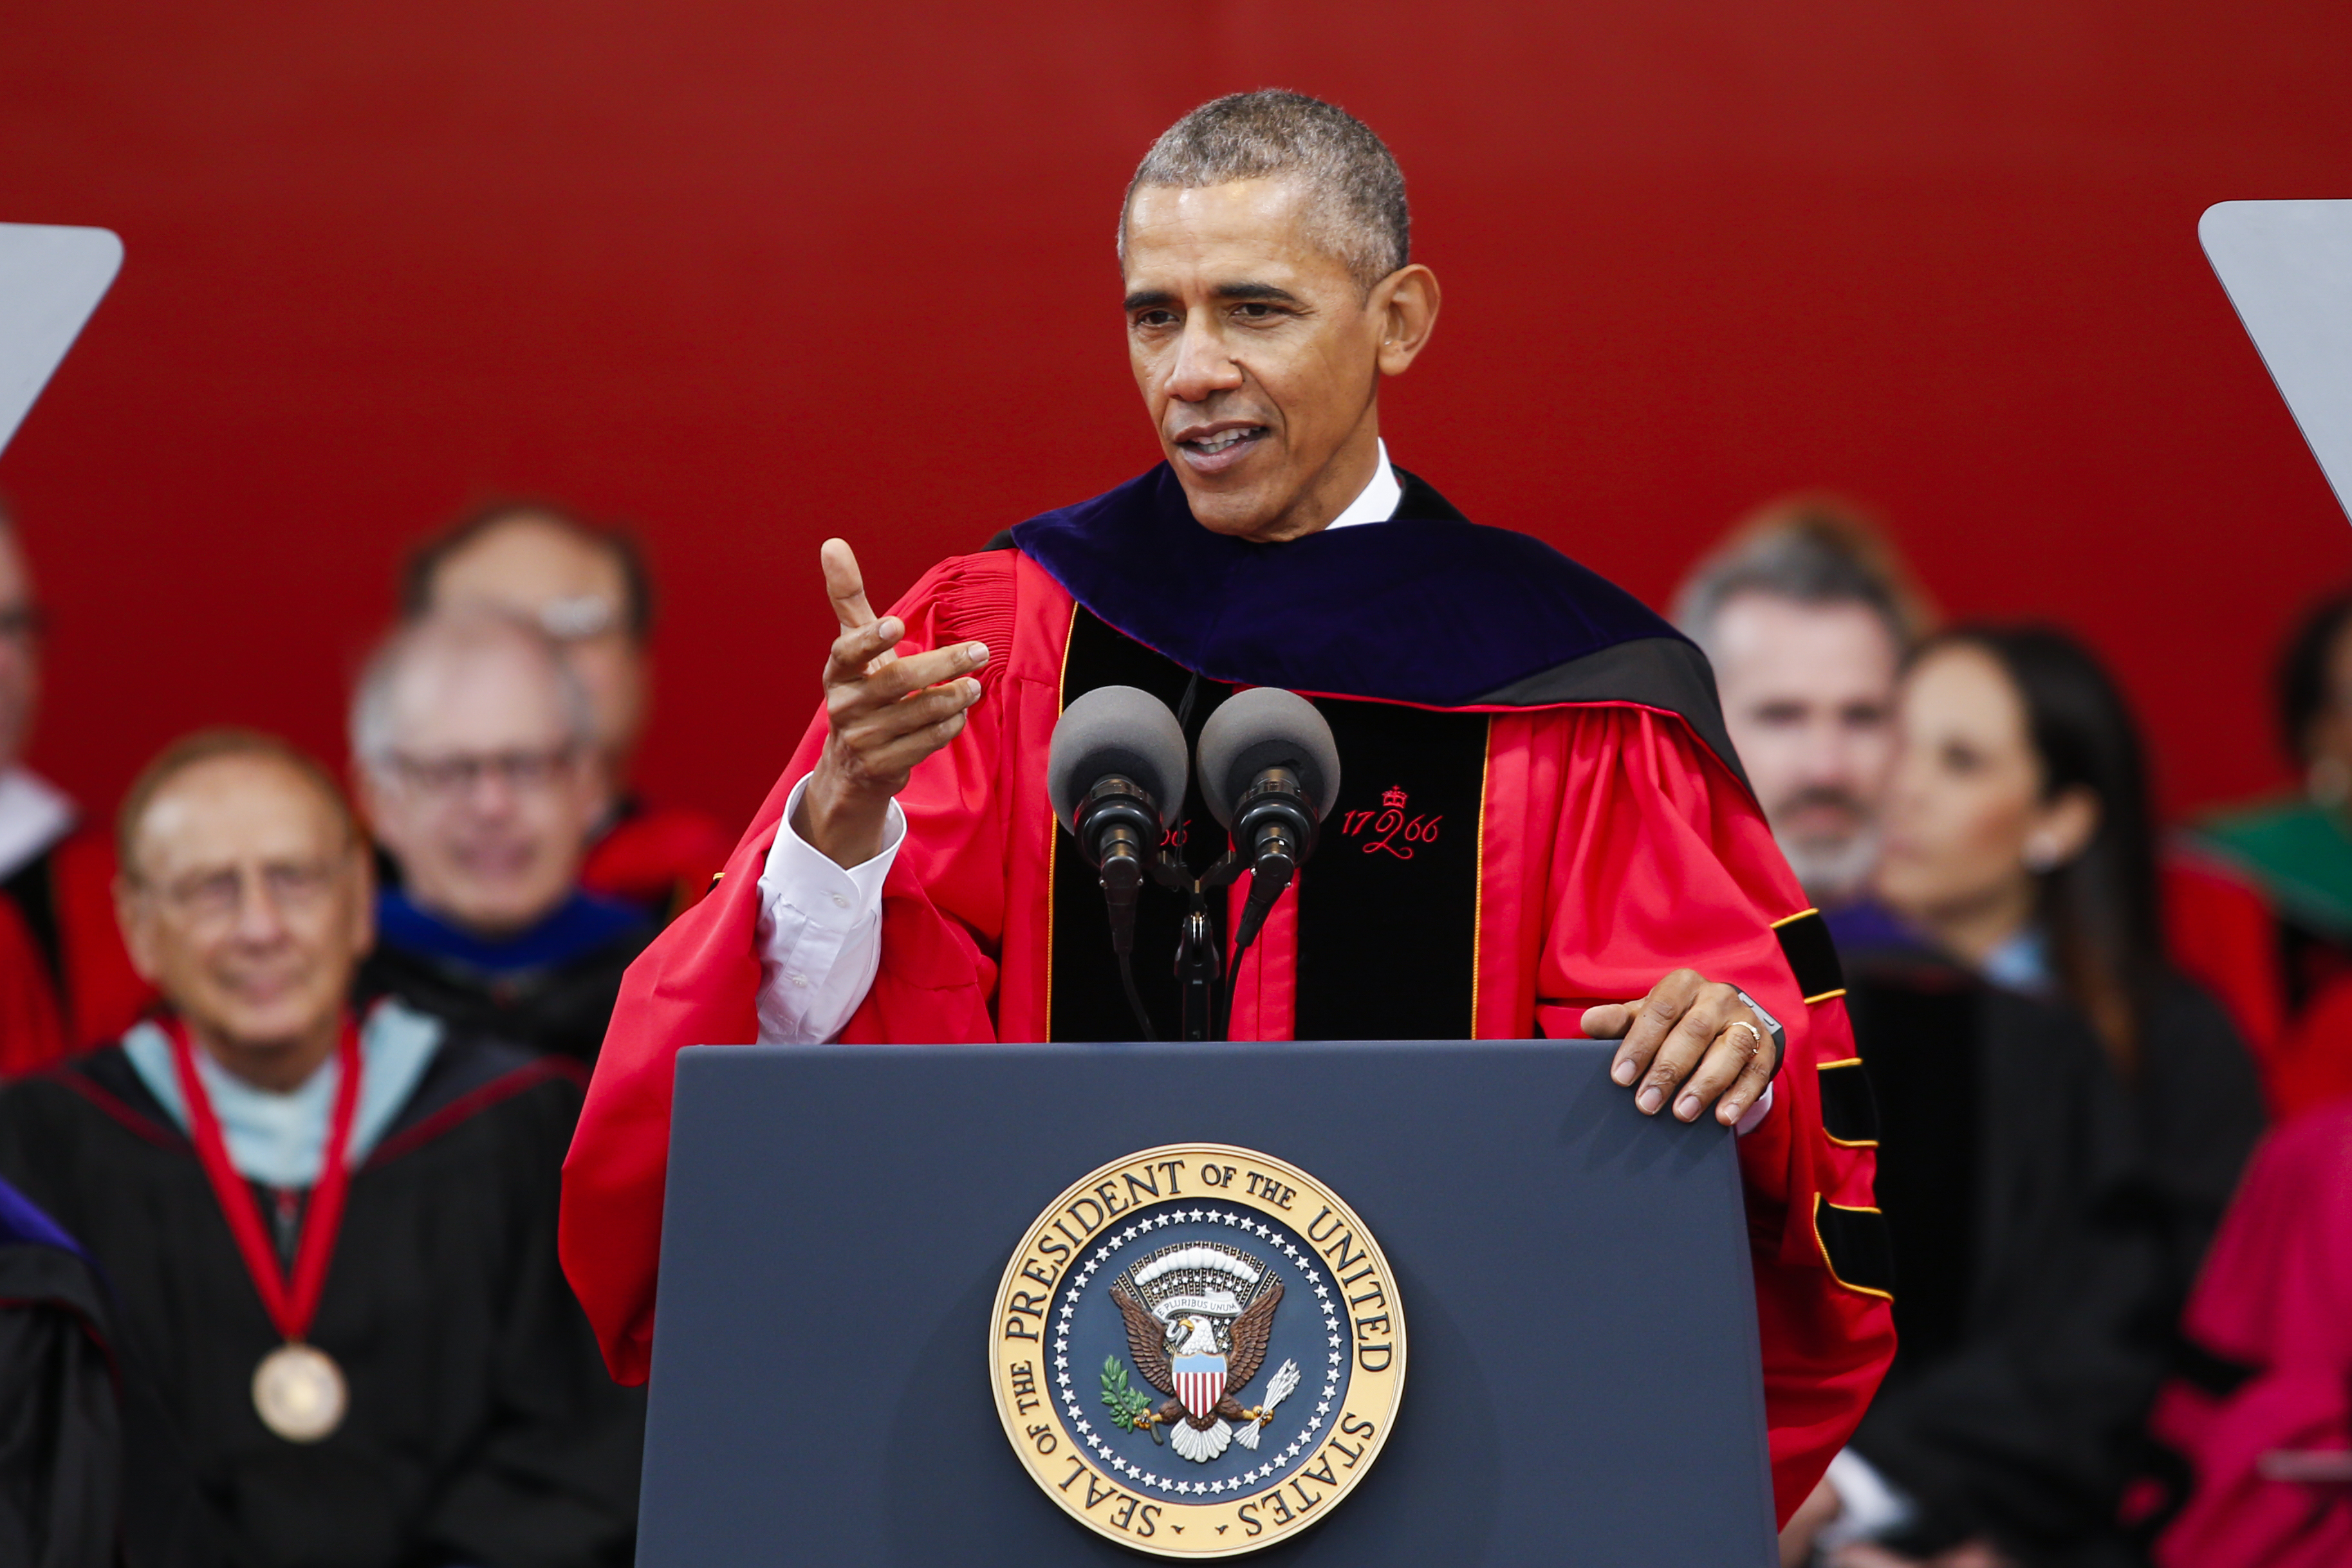 President Barack Obama speaks after receiving an honorary doctorate of laws during the 250th anniversary commencement ceremony at Rutgers University on May 15, 2016 in New Brunswick, New Jersey.